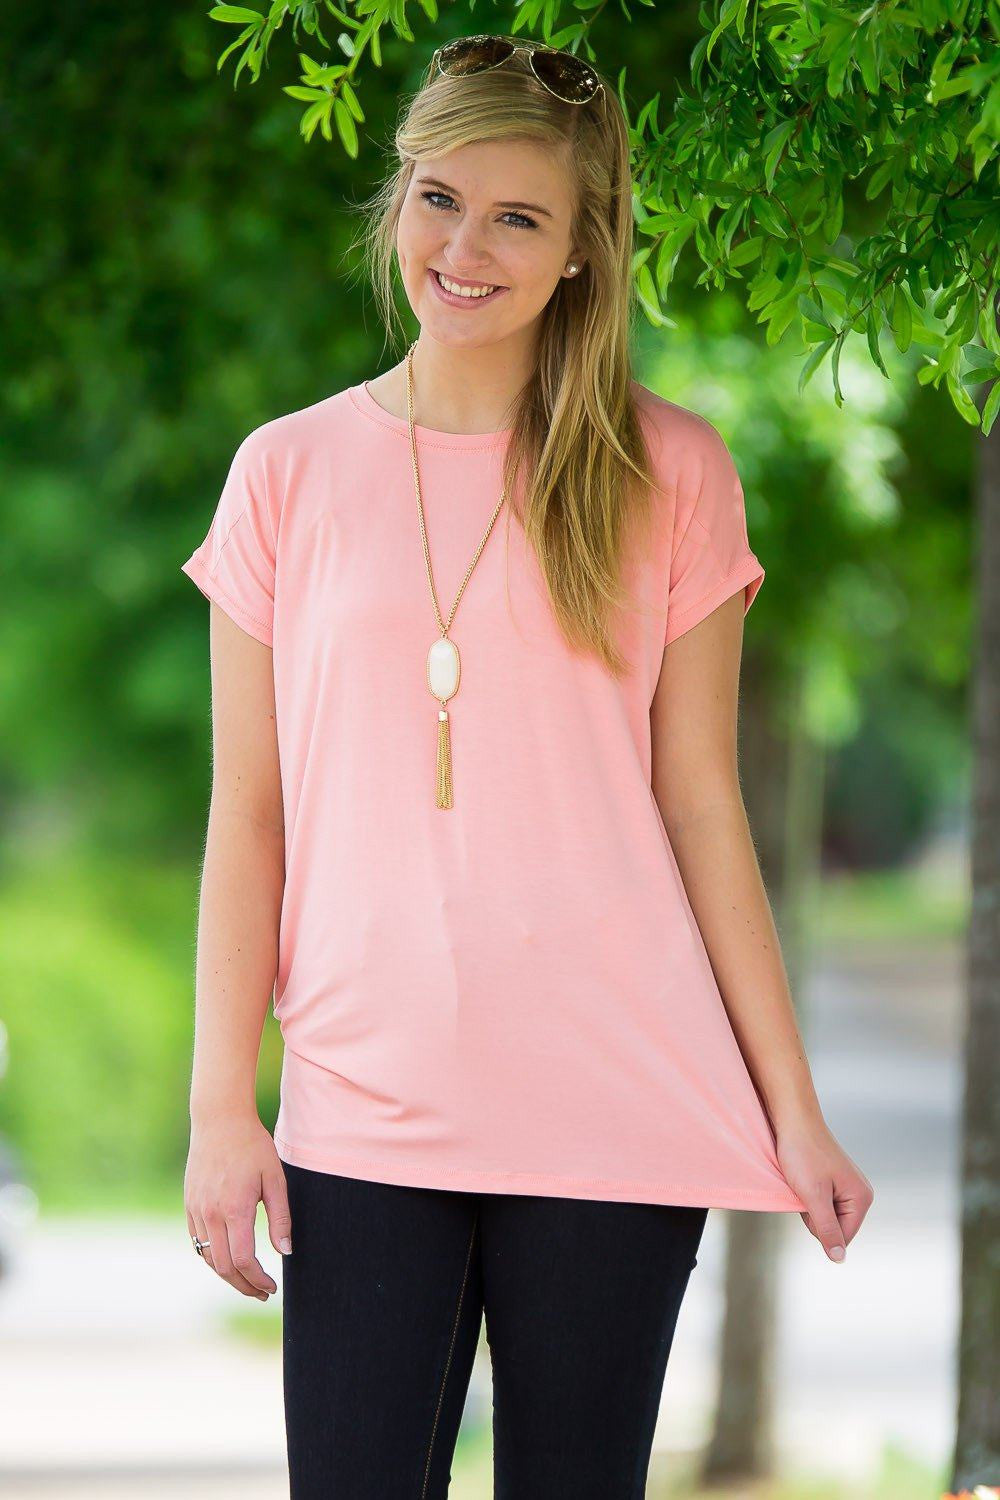 Short Sleeve Rolled Sleeve Piko Top - Peach - Piko Clothing - 1